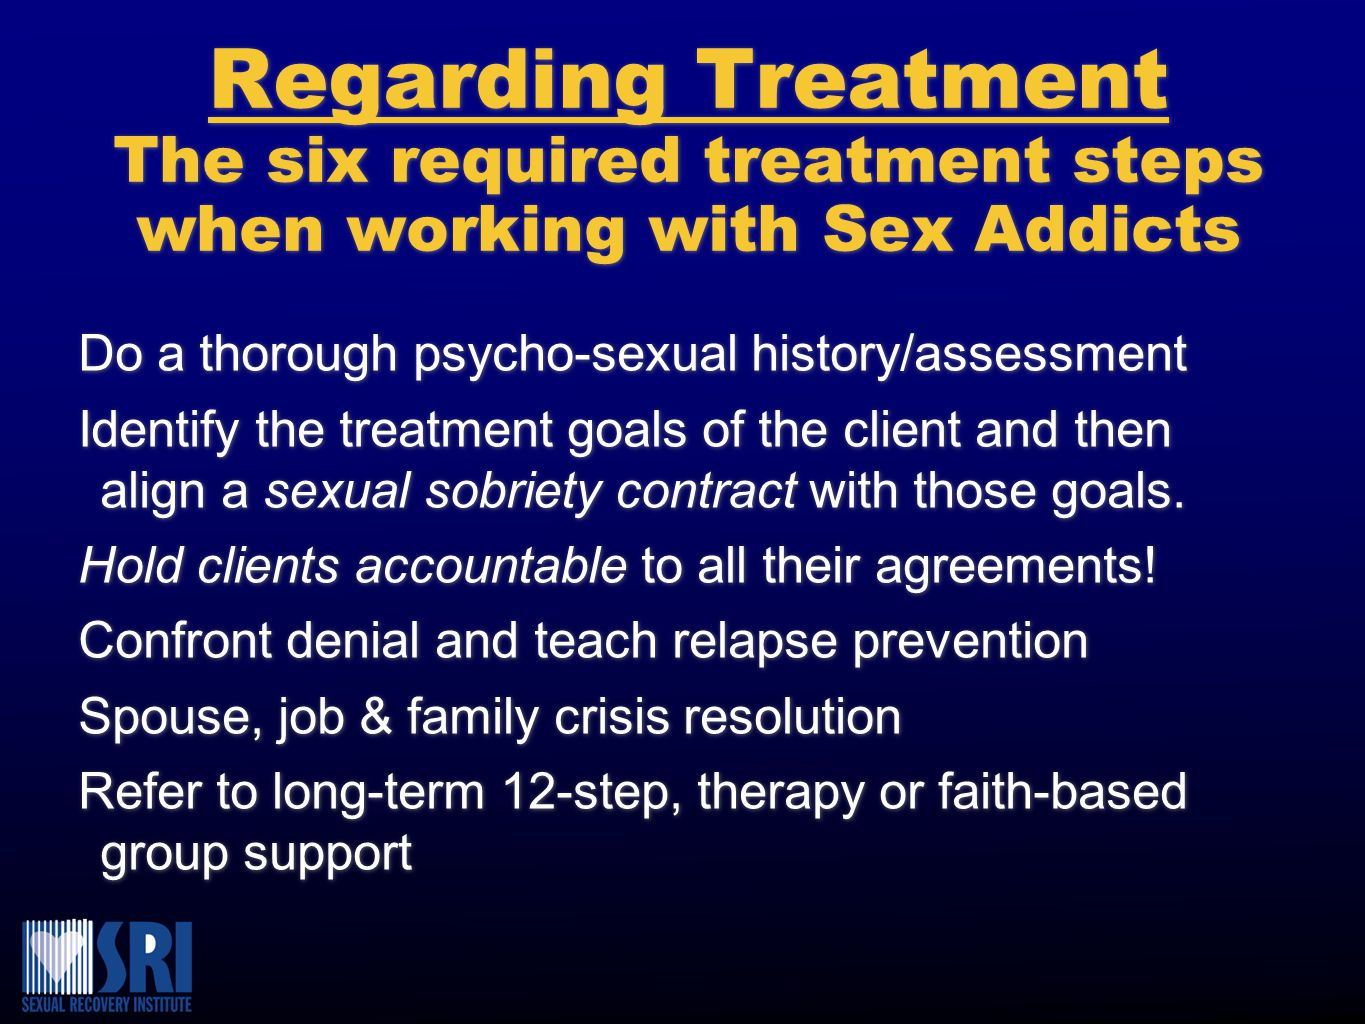 Regarding Treatment The six required treatment steps when working with Sex Addicts